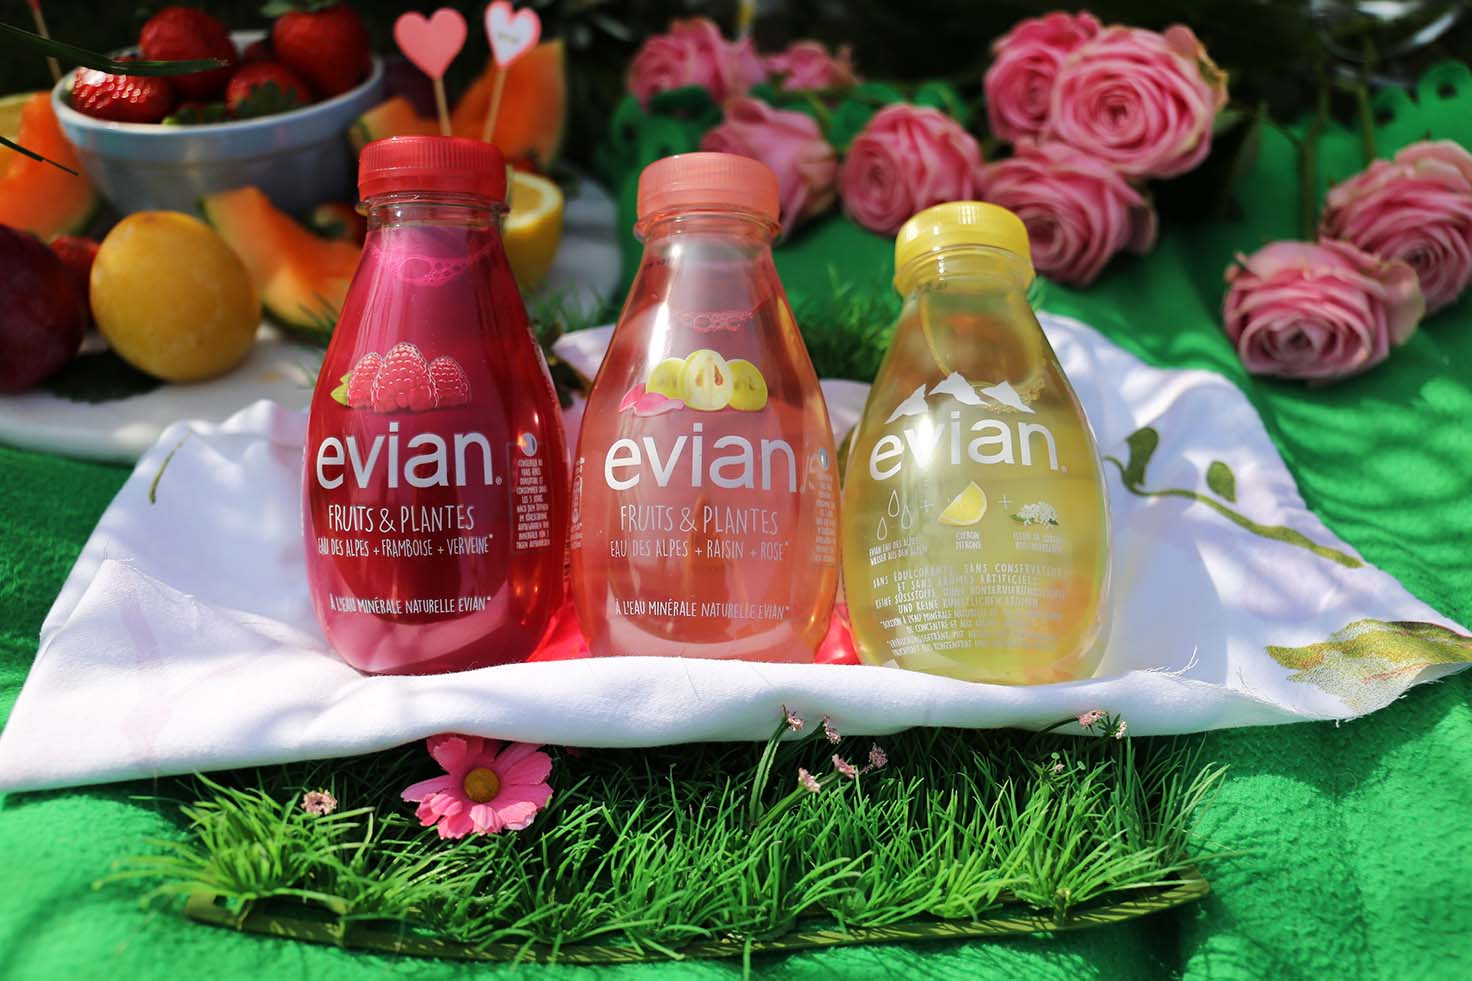 New evian Fruits and Plantes - The perfect spring day